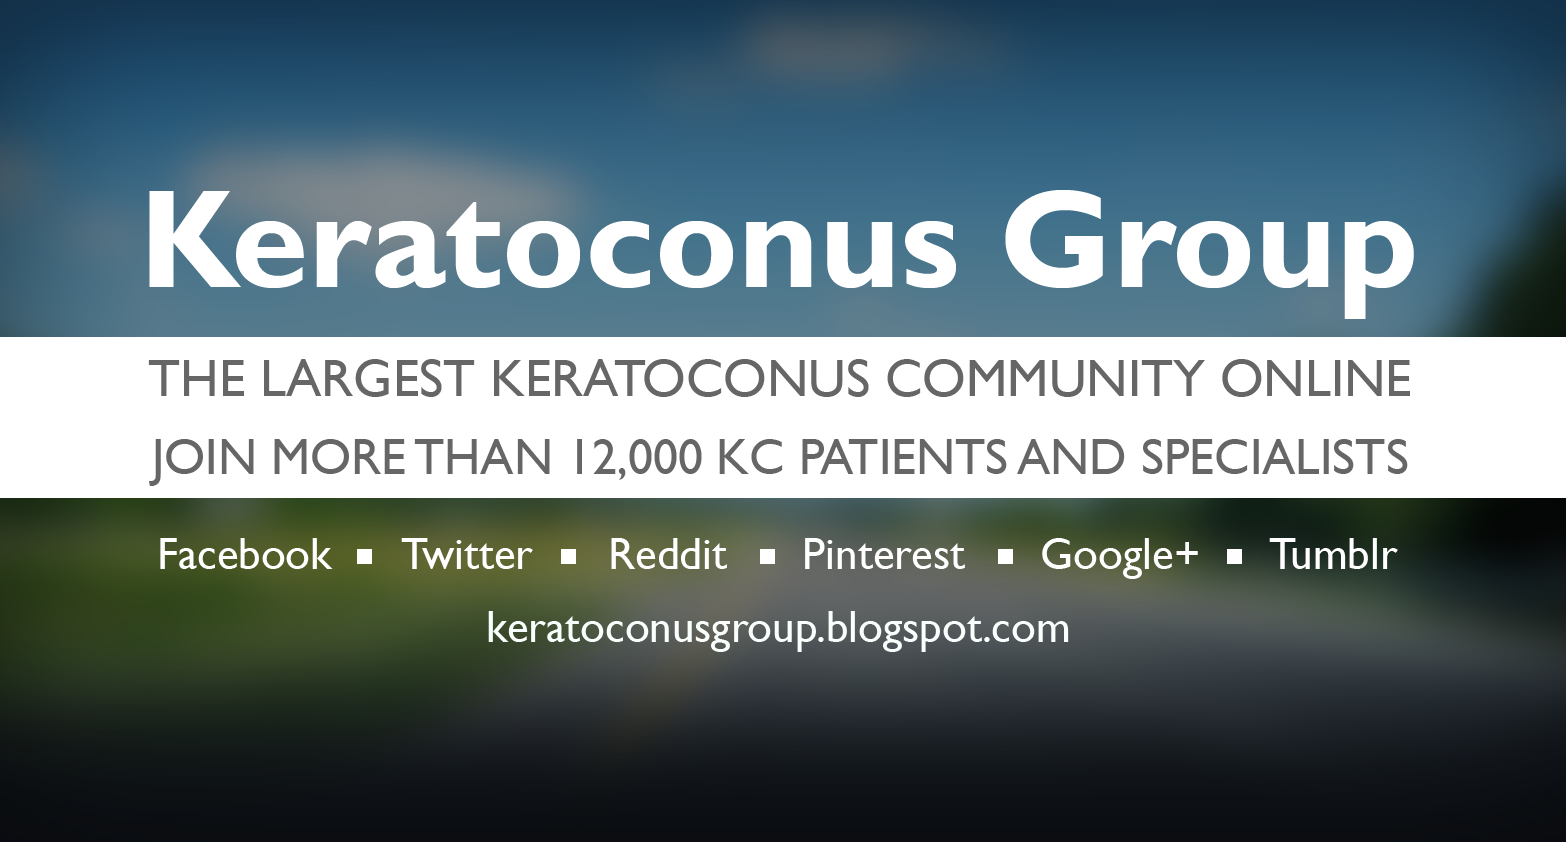 """Keratoconus Group"" The largest keratoconus community online. Join more than 12,000 KC patients and specialists."